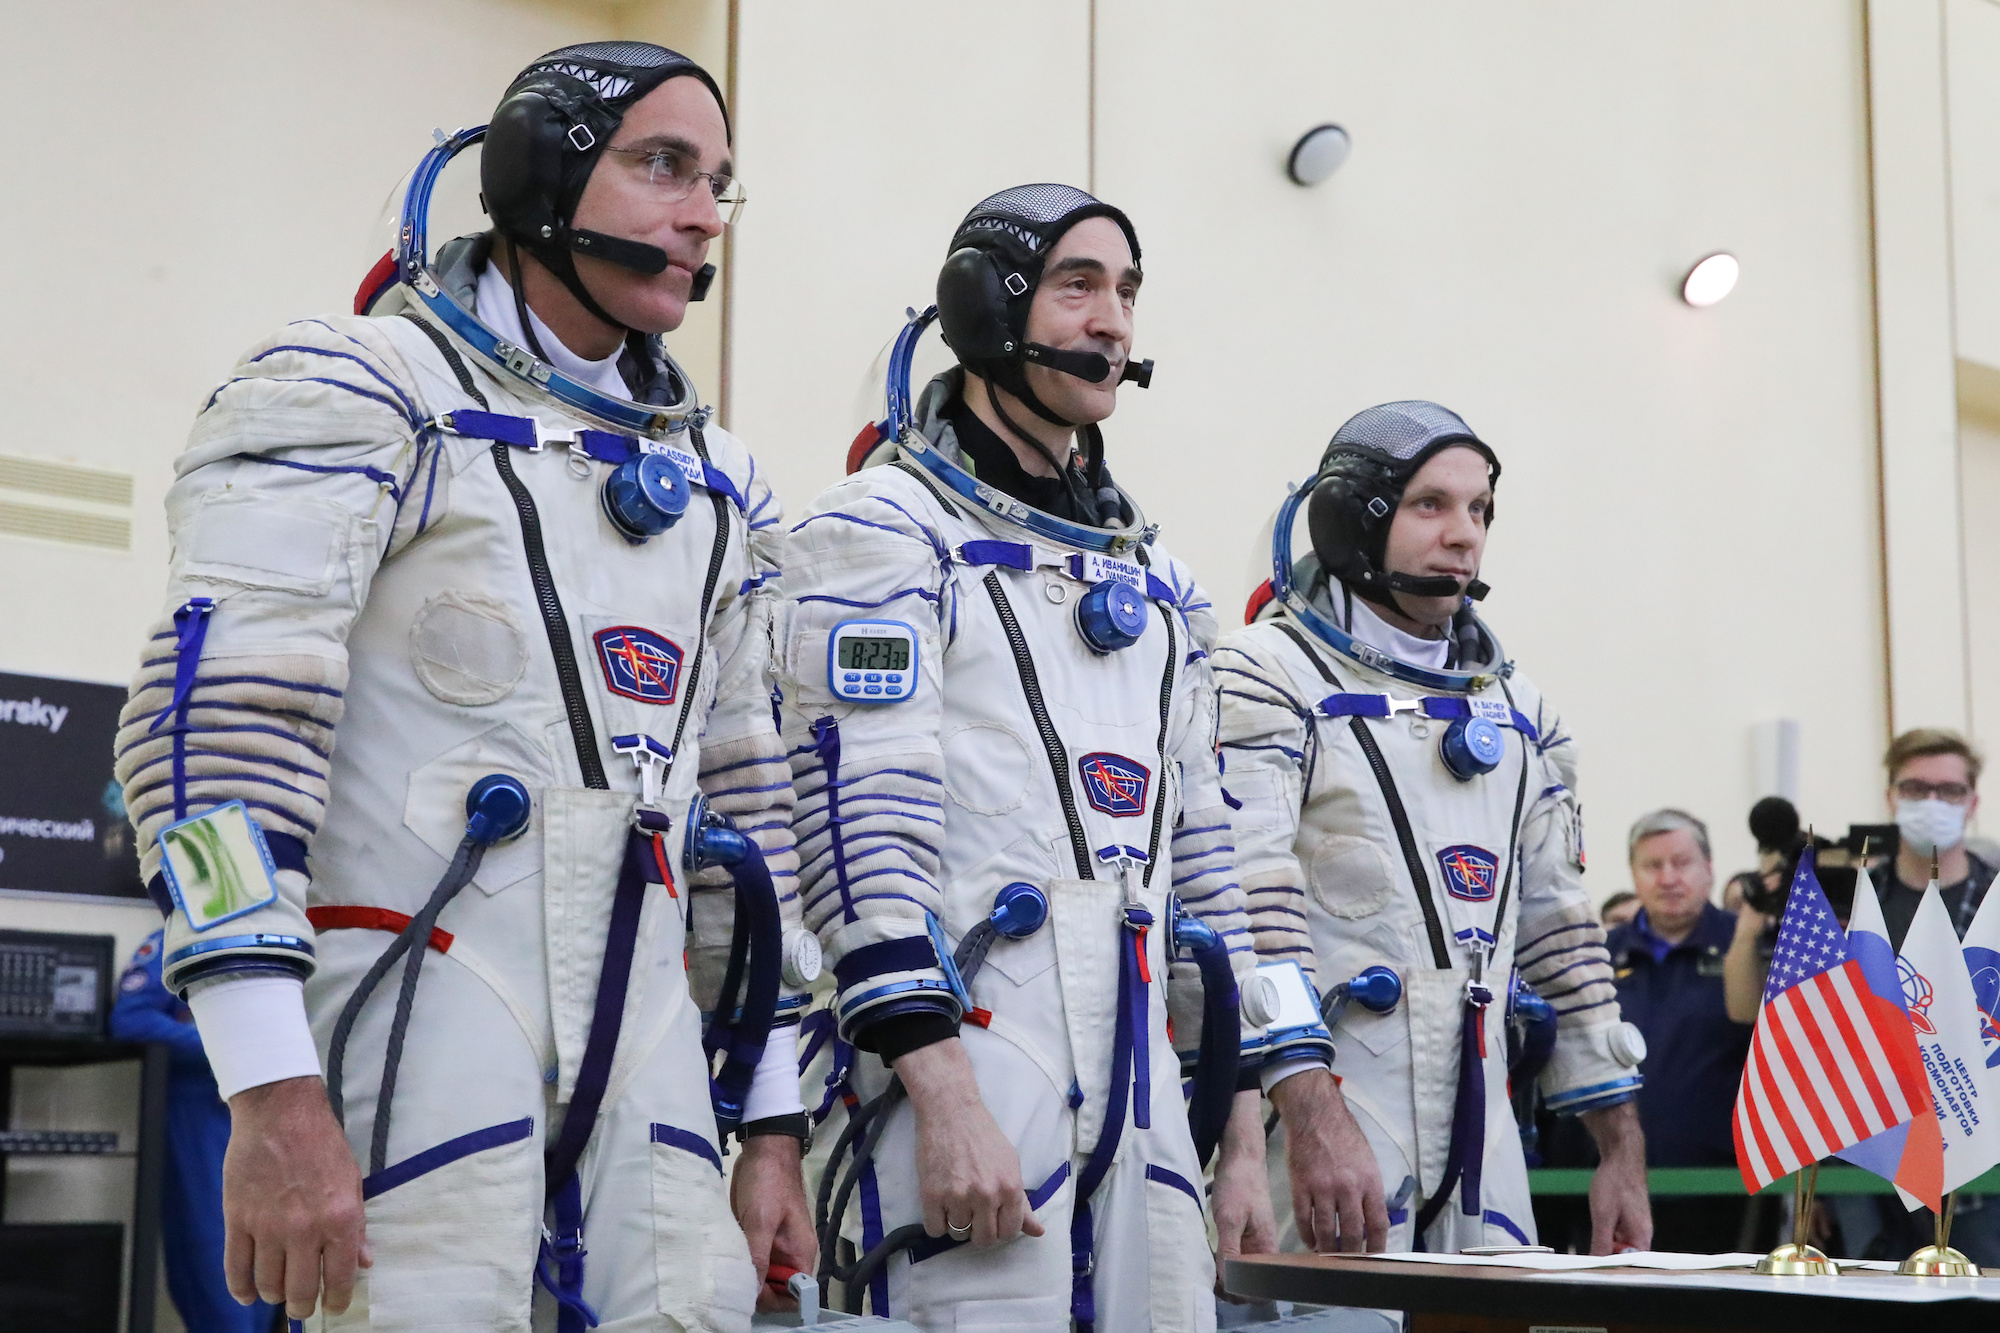 Members of the ISS Expedition 63 prime crew, NASA astronaut Christopher Cassidy, Roscosmos cosmonauts Anatoly Ivanishin and Ivan Vagner (L-R), ready for qualification training sessions at Yuri Gagarin Cosmonaut Training Centre in Zvyozdny Gorodok [Star City] ahead of their Soyuz MS-16 space launch scheduled to take place at the Baikonur Cosmodrome on April 9, 2020.